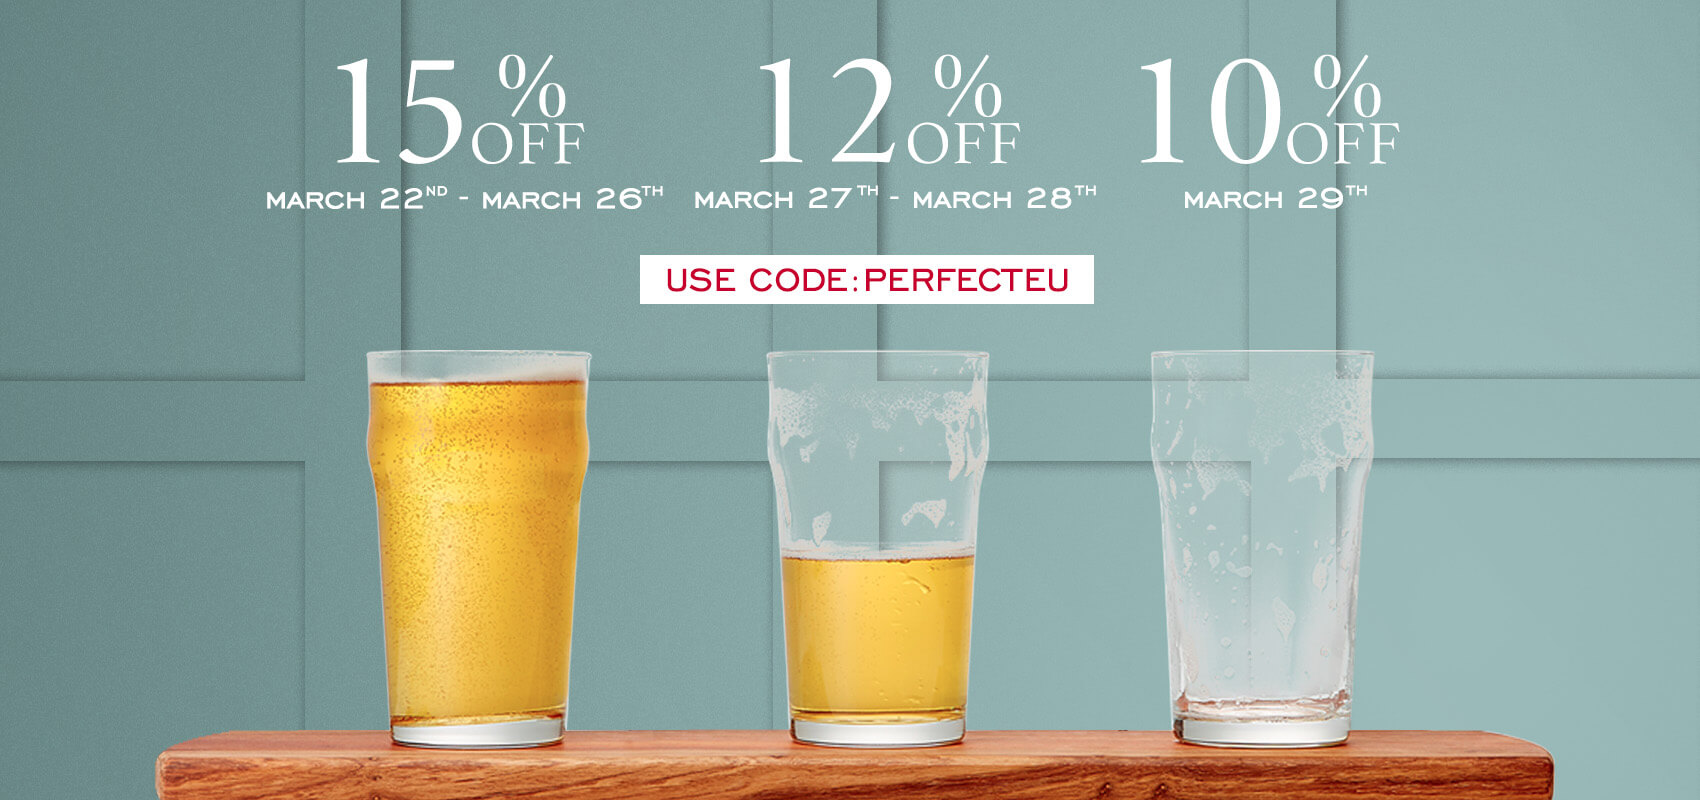 15% off everything March 22nd to March 26th, 12% off March 27th to March 28th, 10% off March 29th with code PERFECTEU